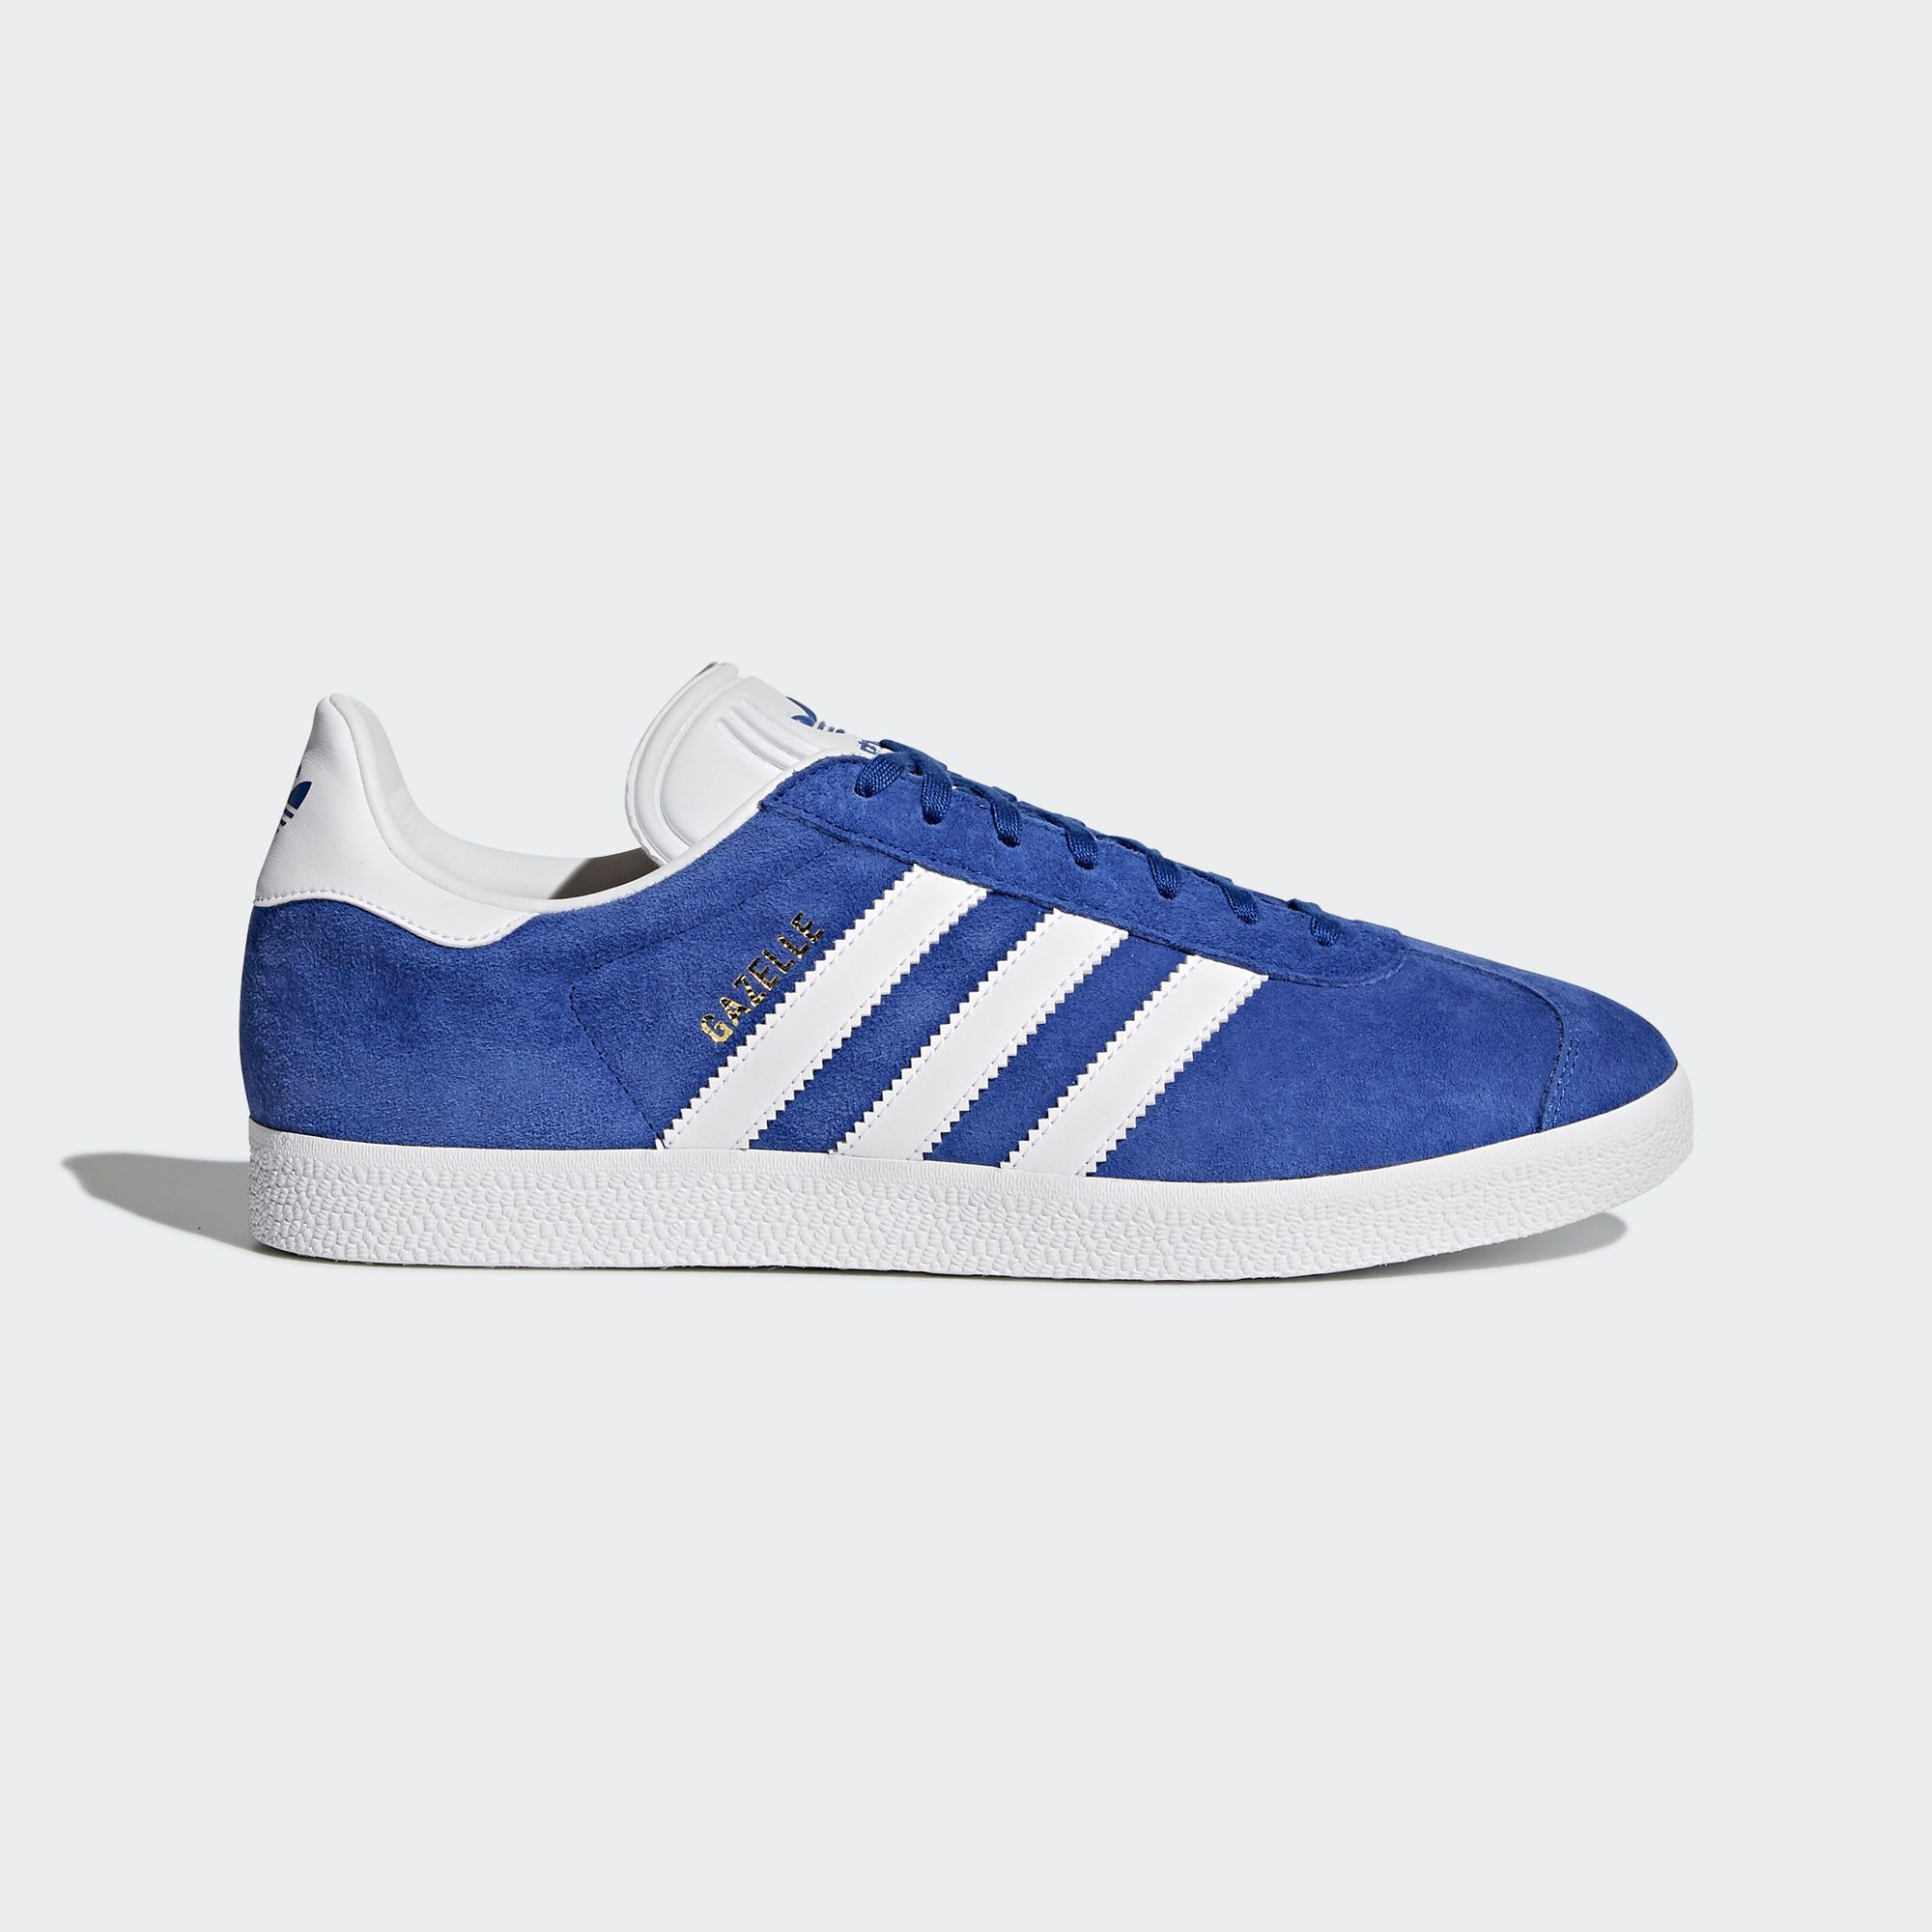 huge selection of 8bb7a 5c308 Gazelle Blue Adidas, Unisex, Adidas Gazelle, Blue Shoes, Adidas Shoes, 90s